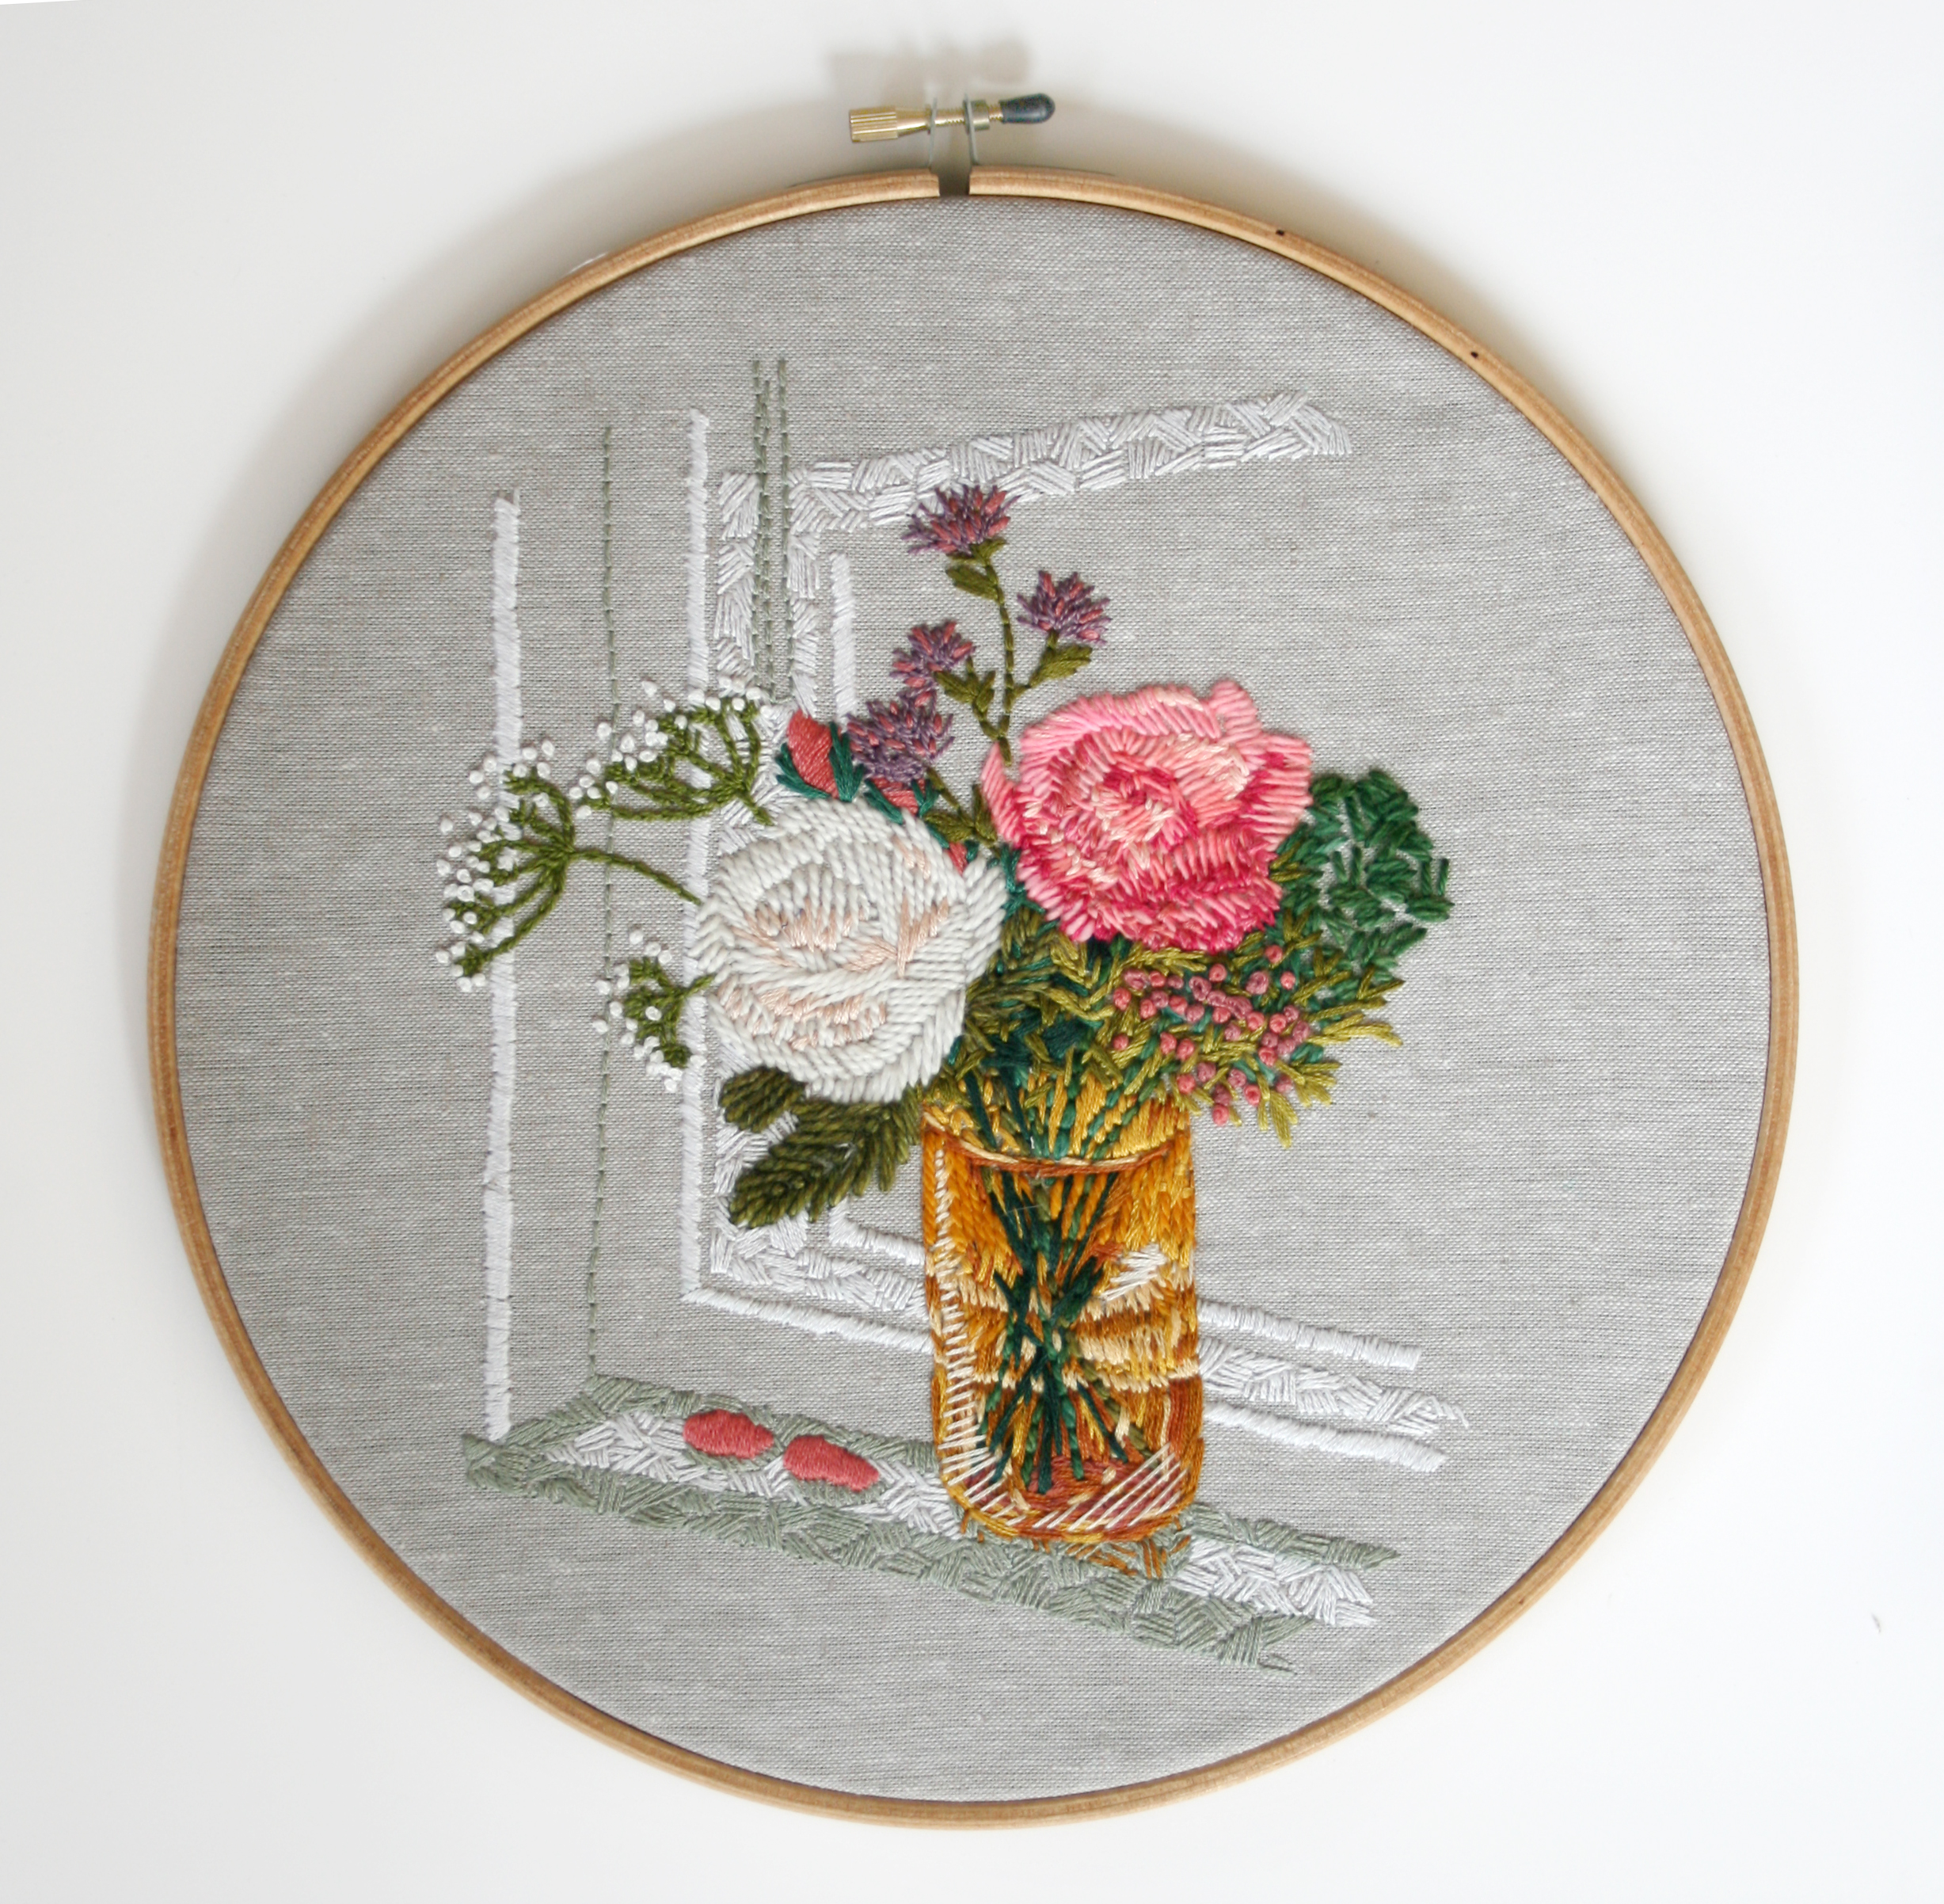 Triple Take: Kitchen Window Embroidery (One of a set of three versions of this scene) - Amanda Farquharson